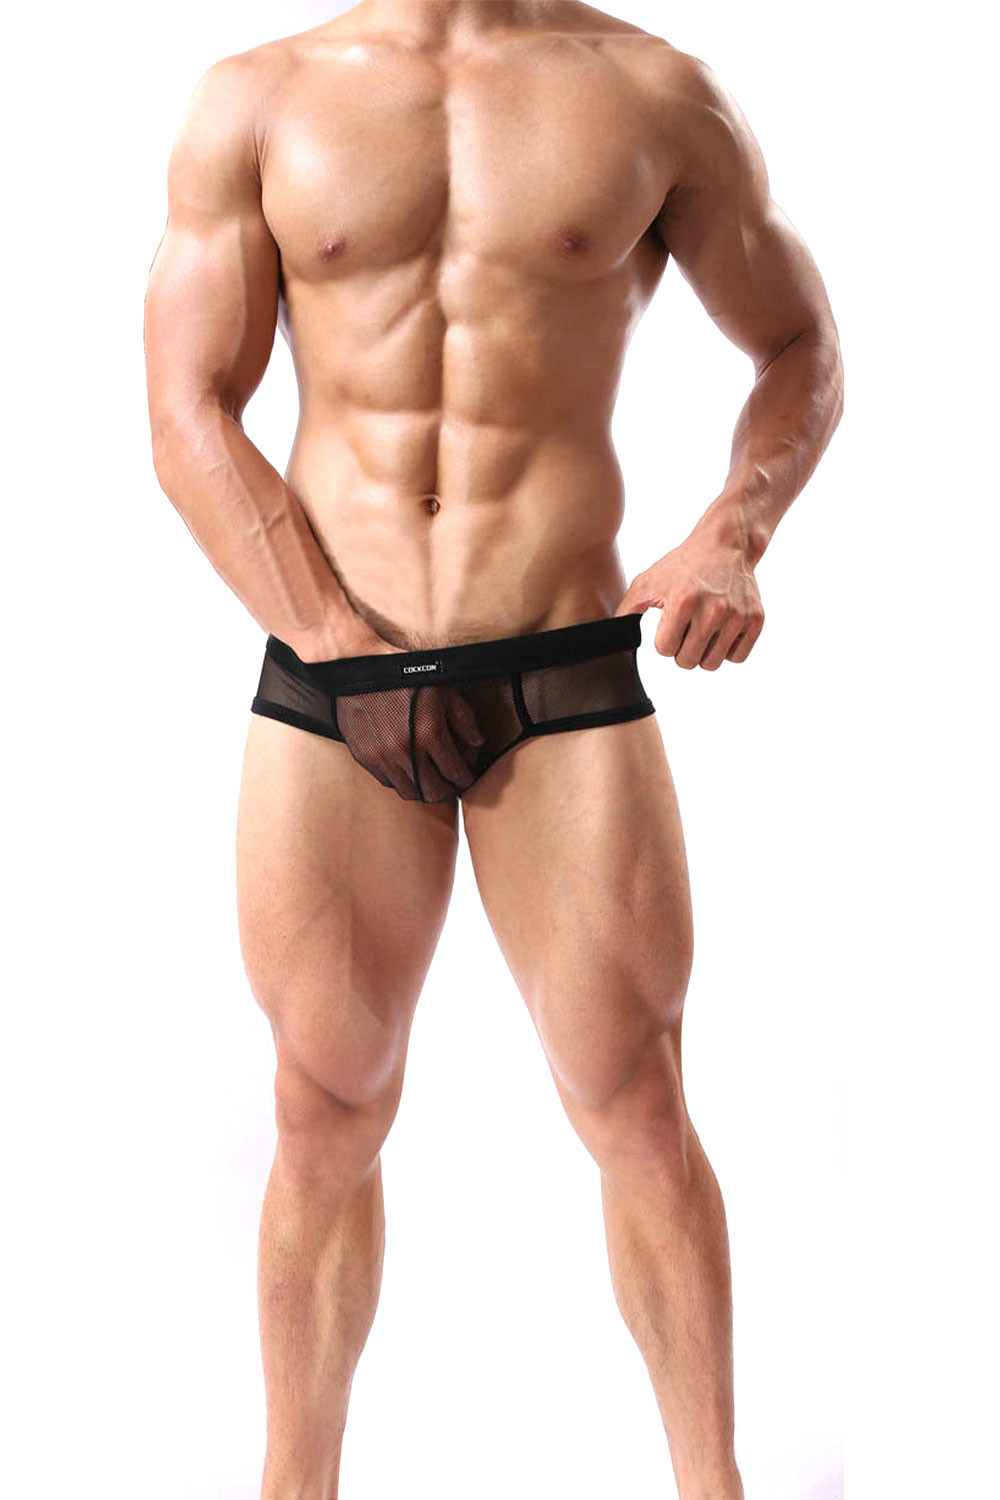 Sexy Men Mesh Briefs 2015 New Trendy See Through Soft Mesh Briefs Underwear Comfy 5081 Mesh Briefs Underwear